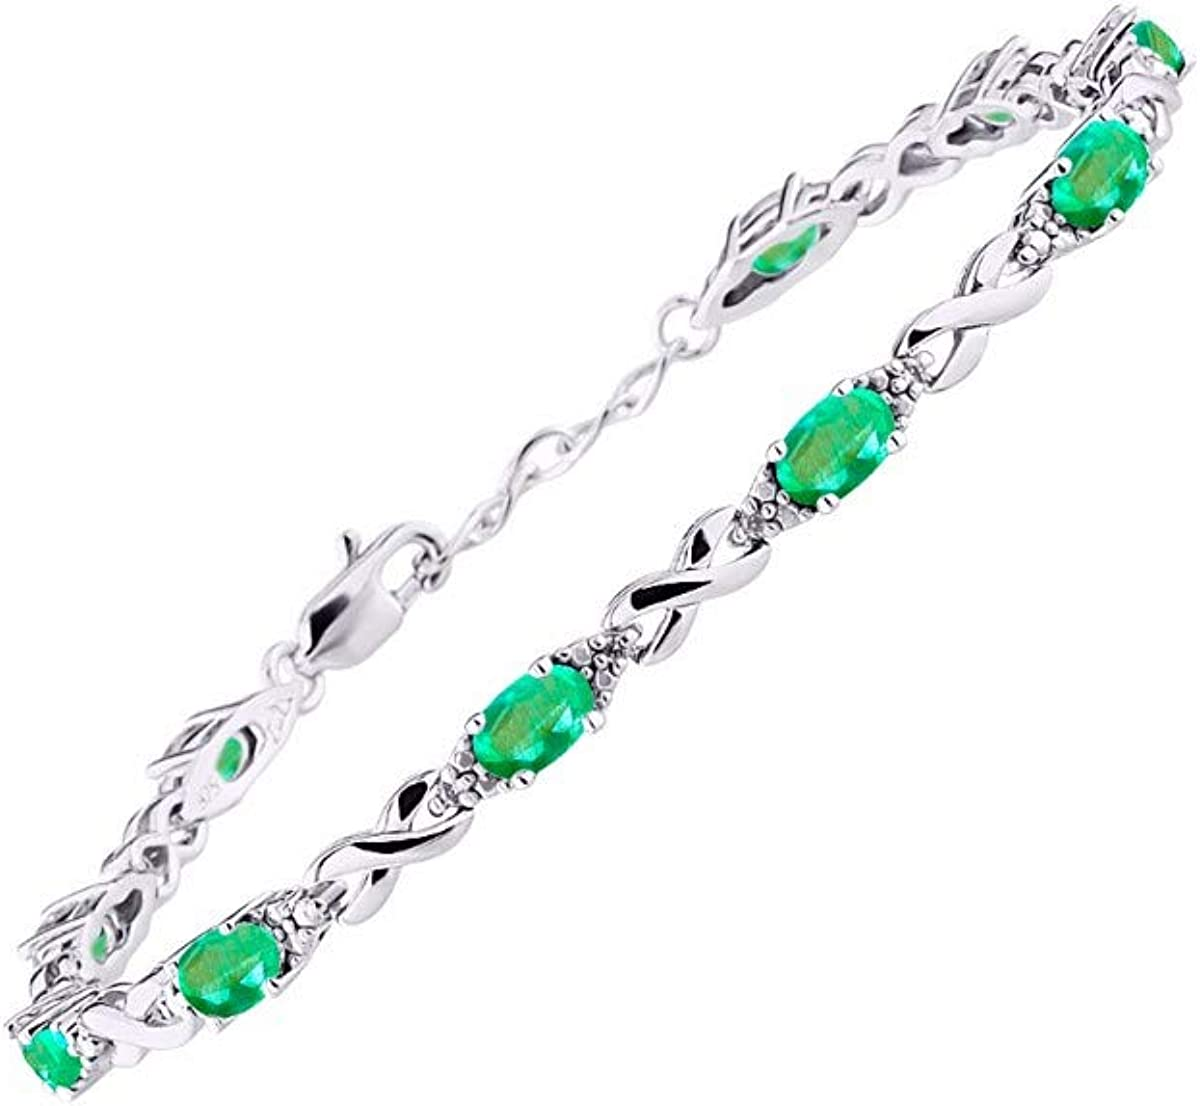 Marquise Emerald /& Diamond Adjustable Necklace Set in Sterling Silver .925